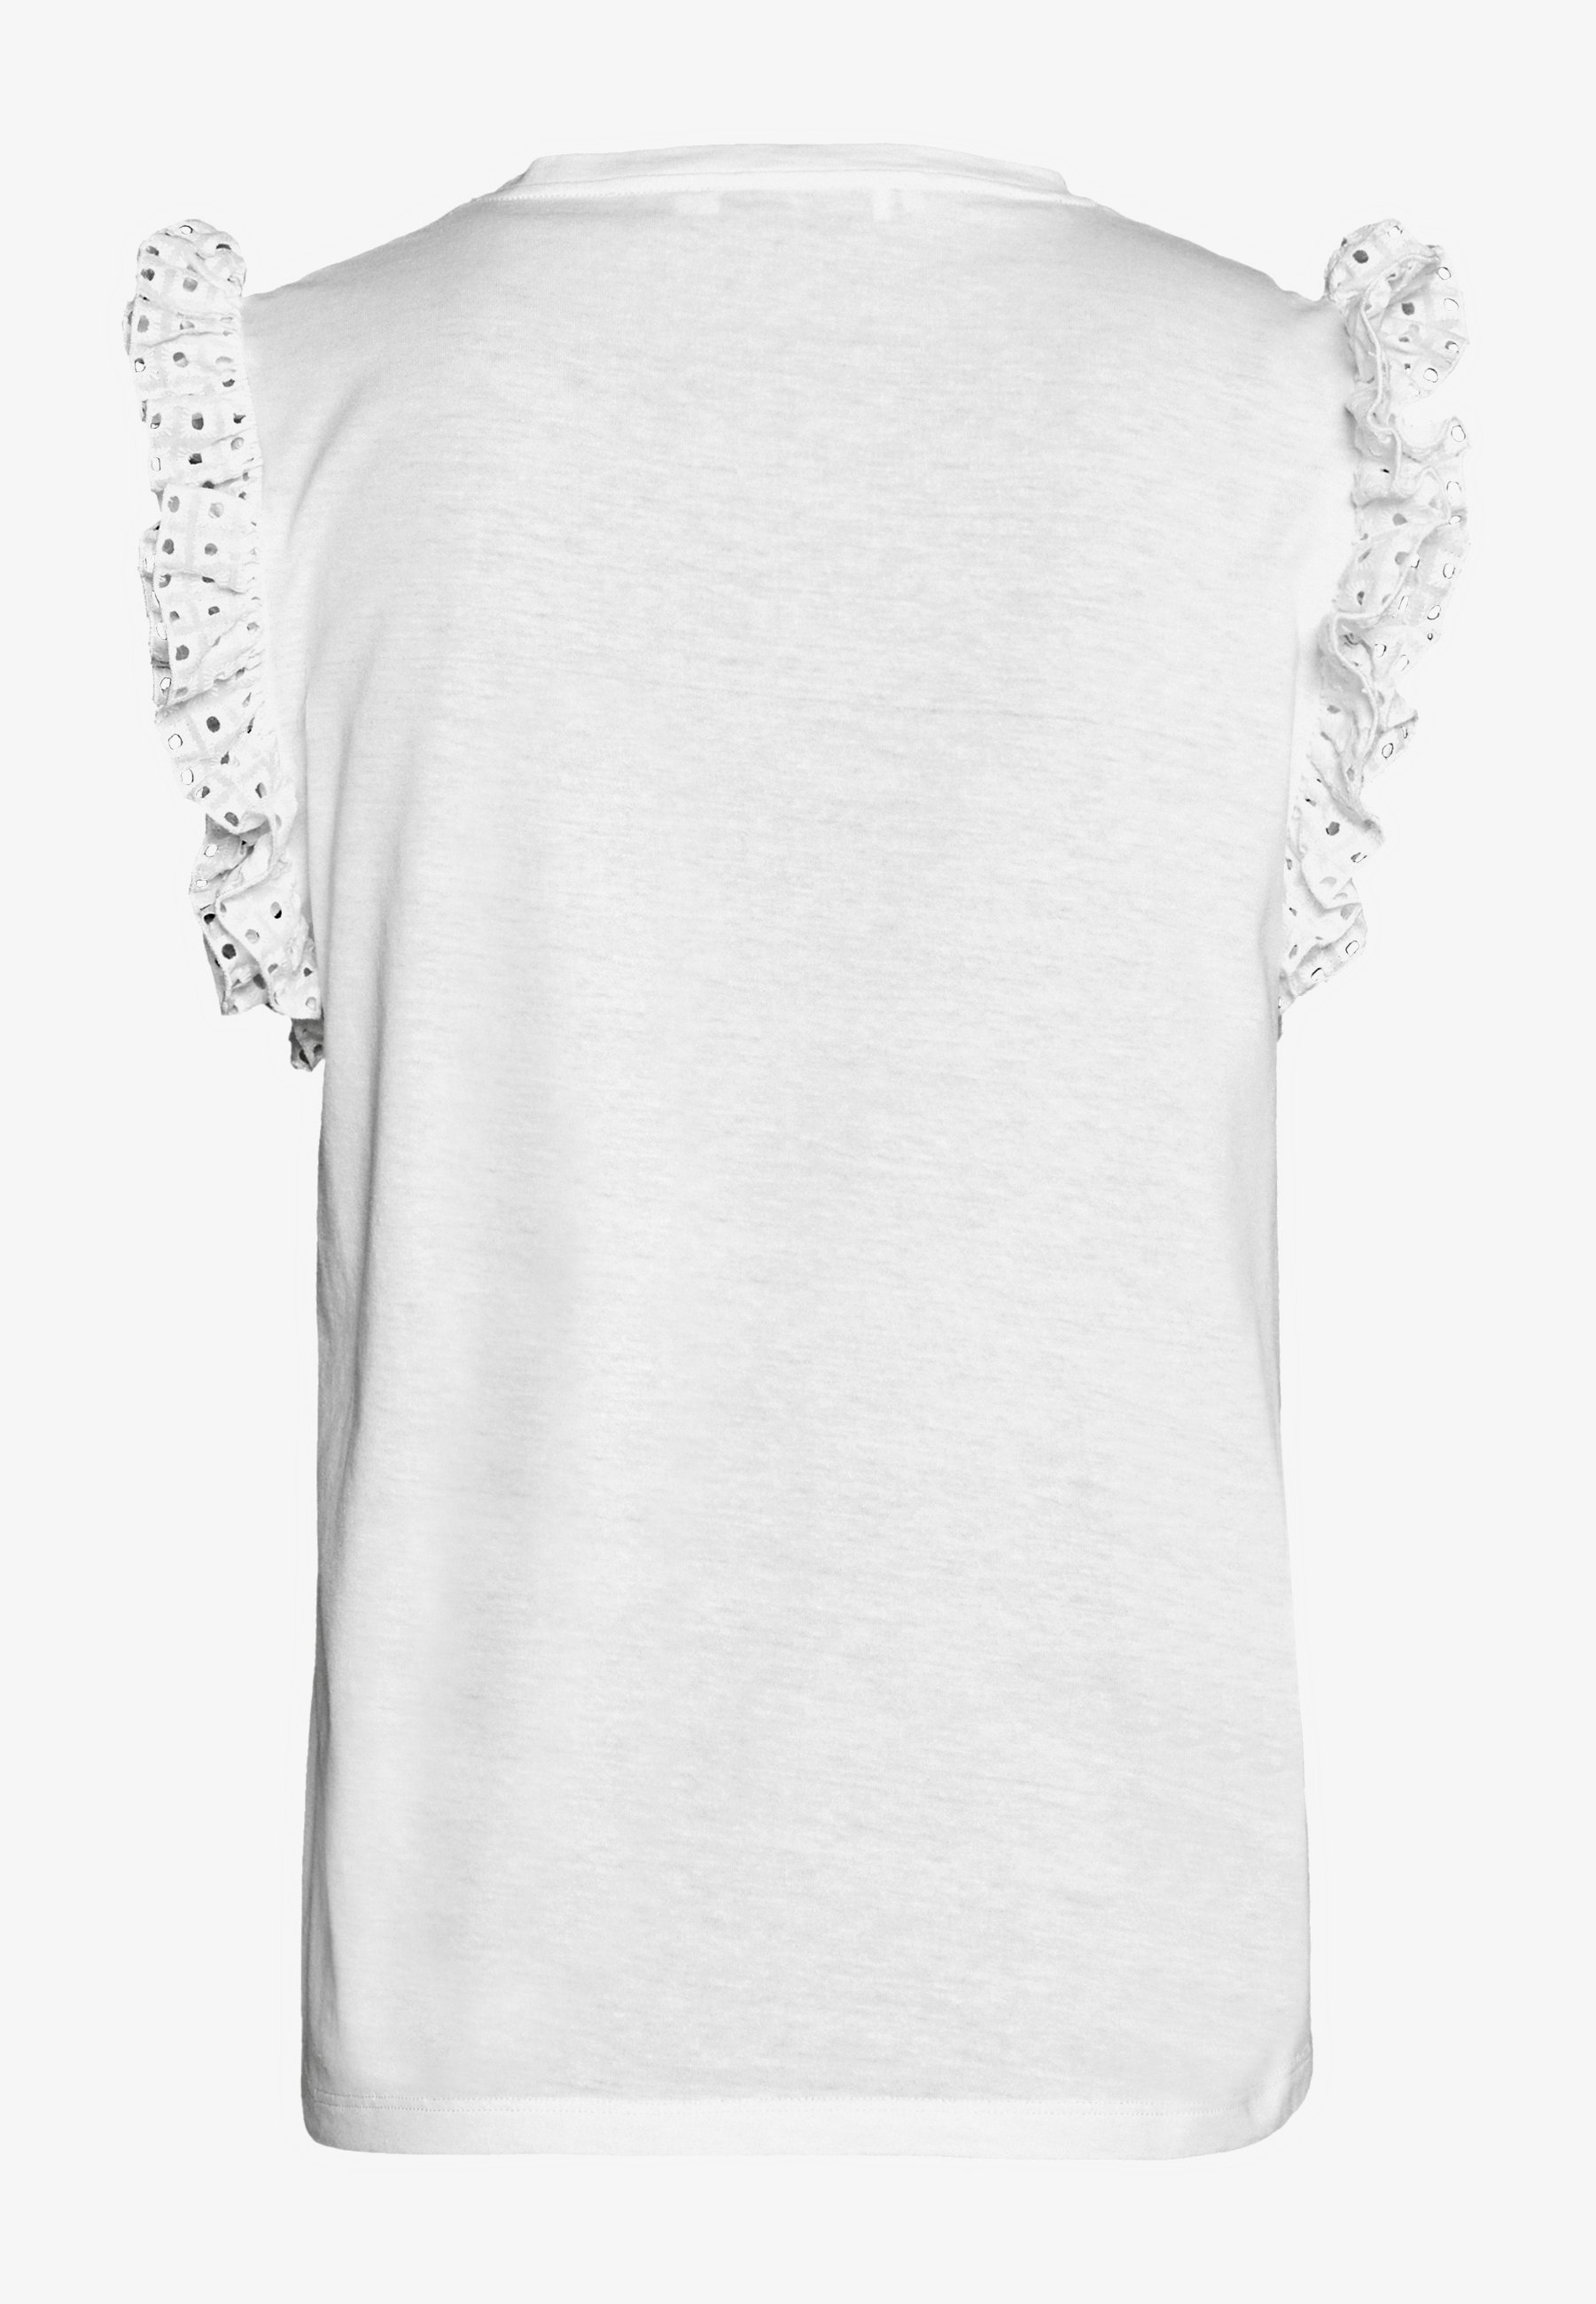 7 For All Mankind Ruffle Tank Tee - T-shirt Con Stampa White hlA3MlG